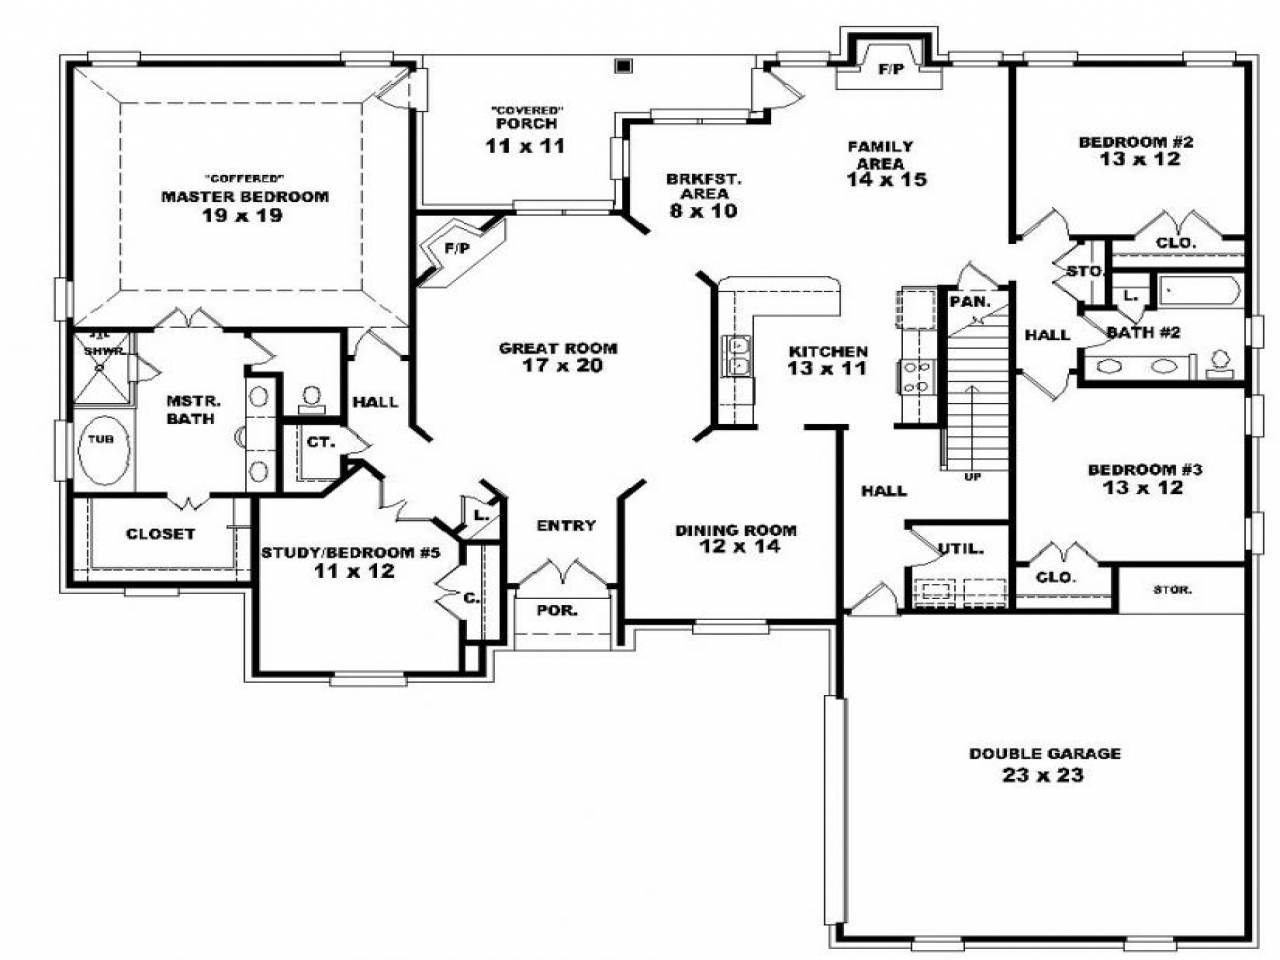 4 bedroom 2 story house plans story 3 bedroom with for Three story house plans